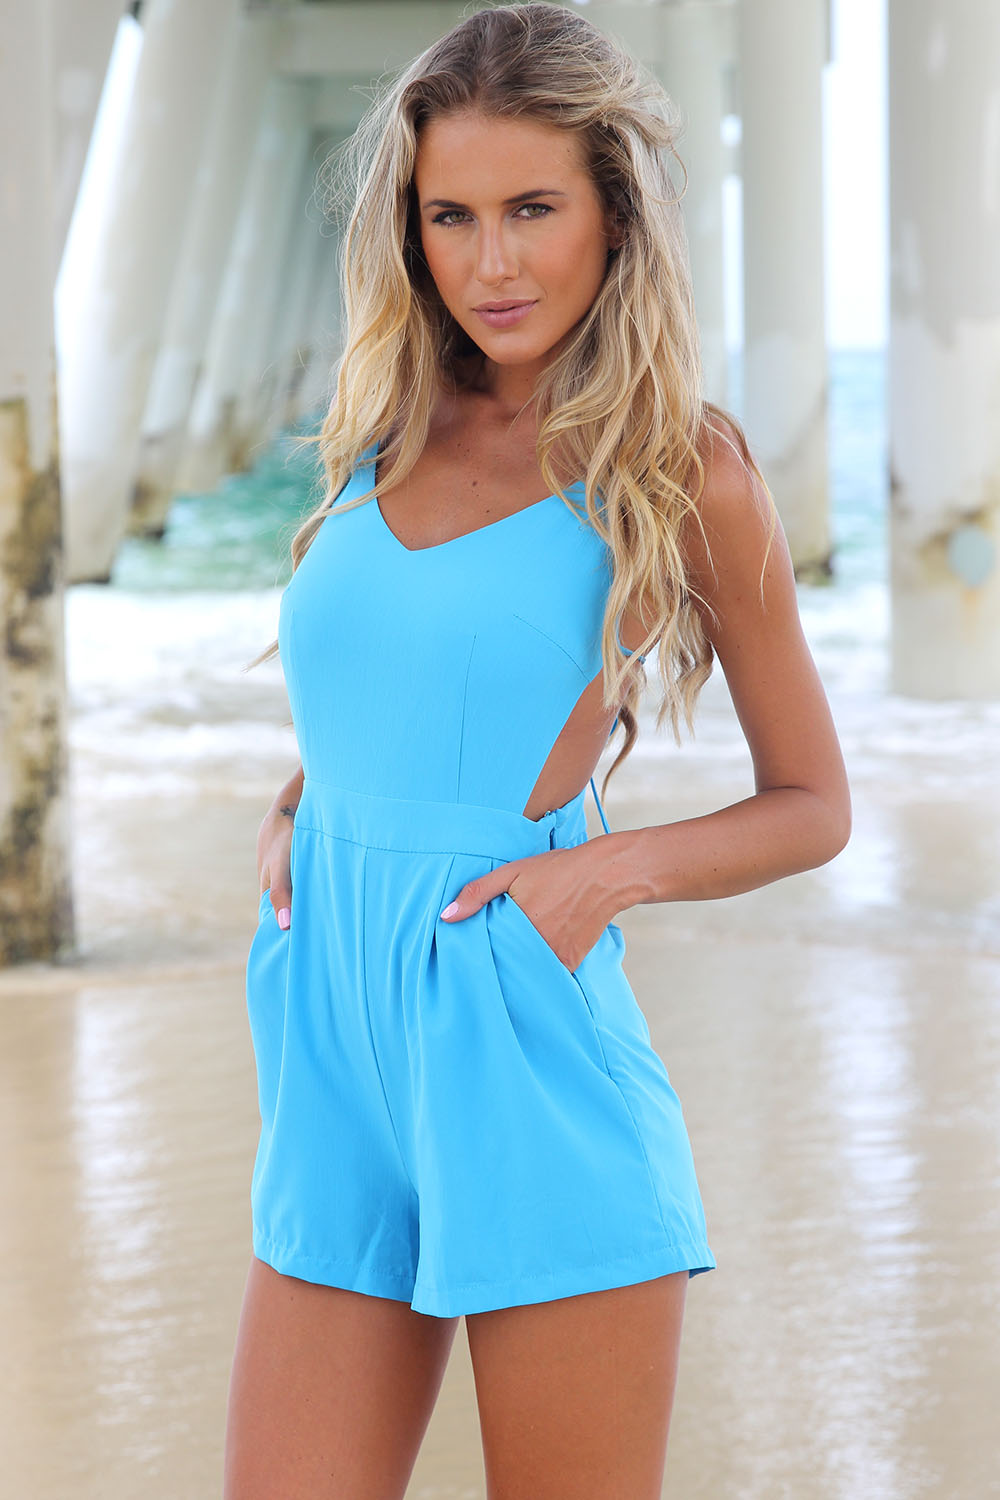 Blue Jump Suits/Rompers - Sky Blue Playsuit with Exposed   UsTrendy